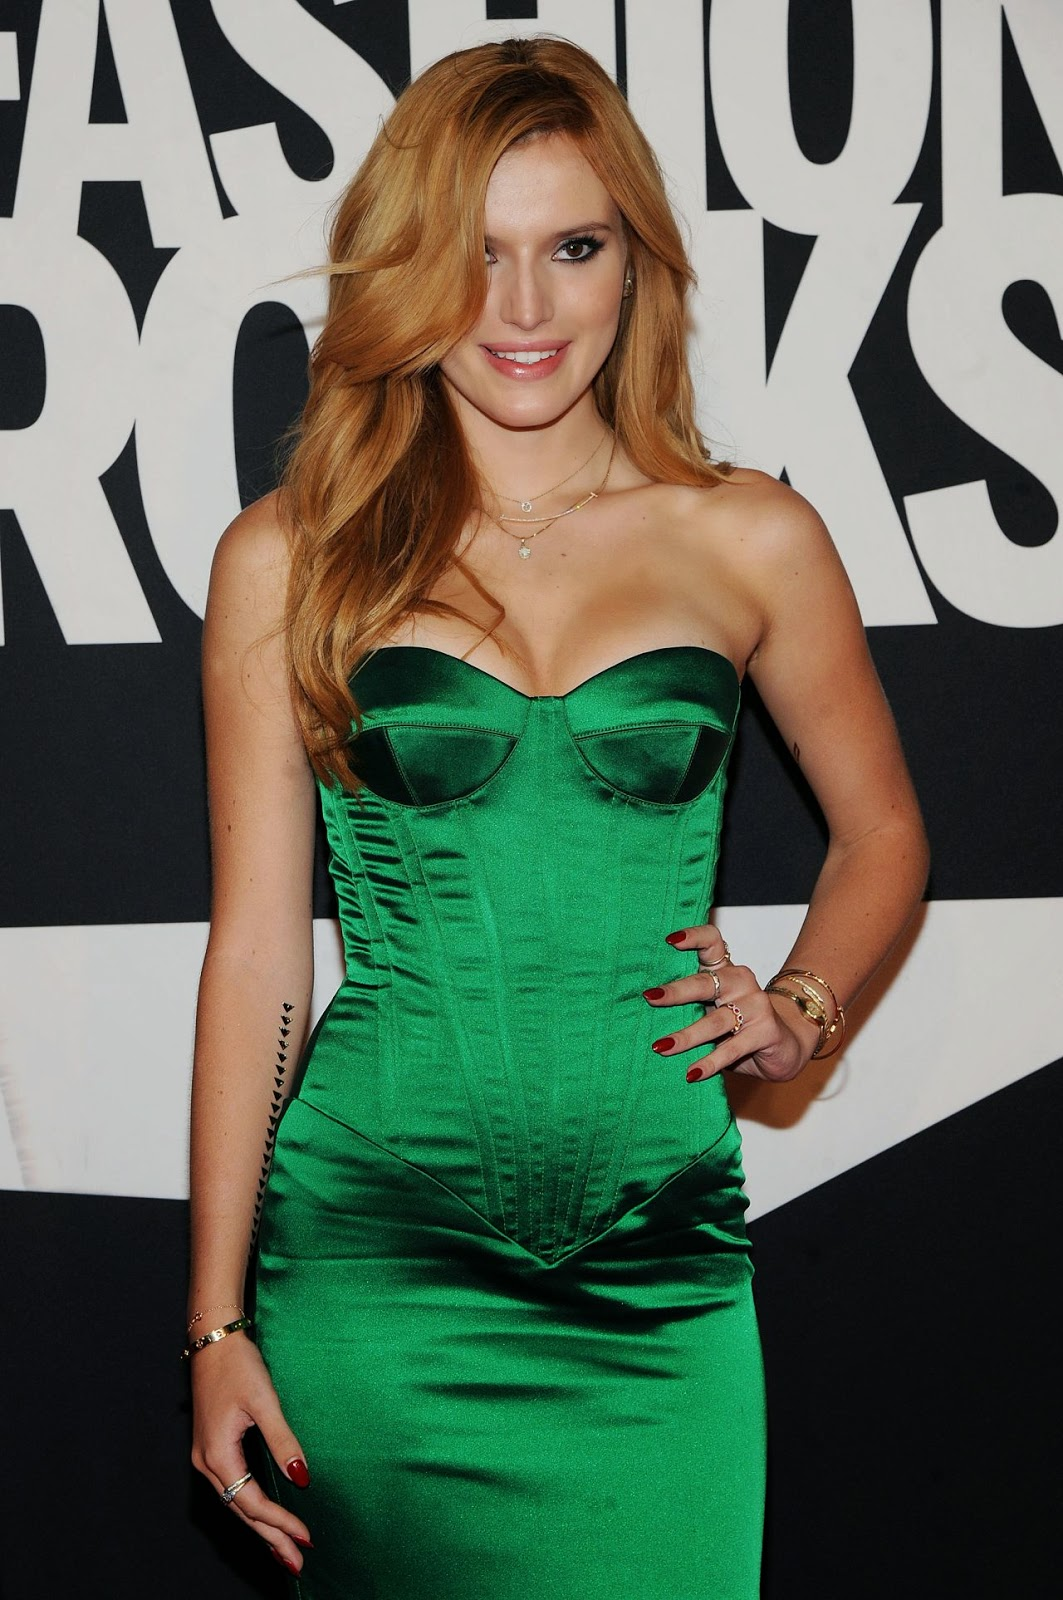 Bella Thorne Breast Implants